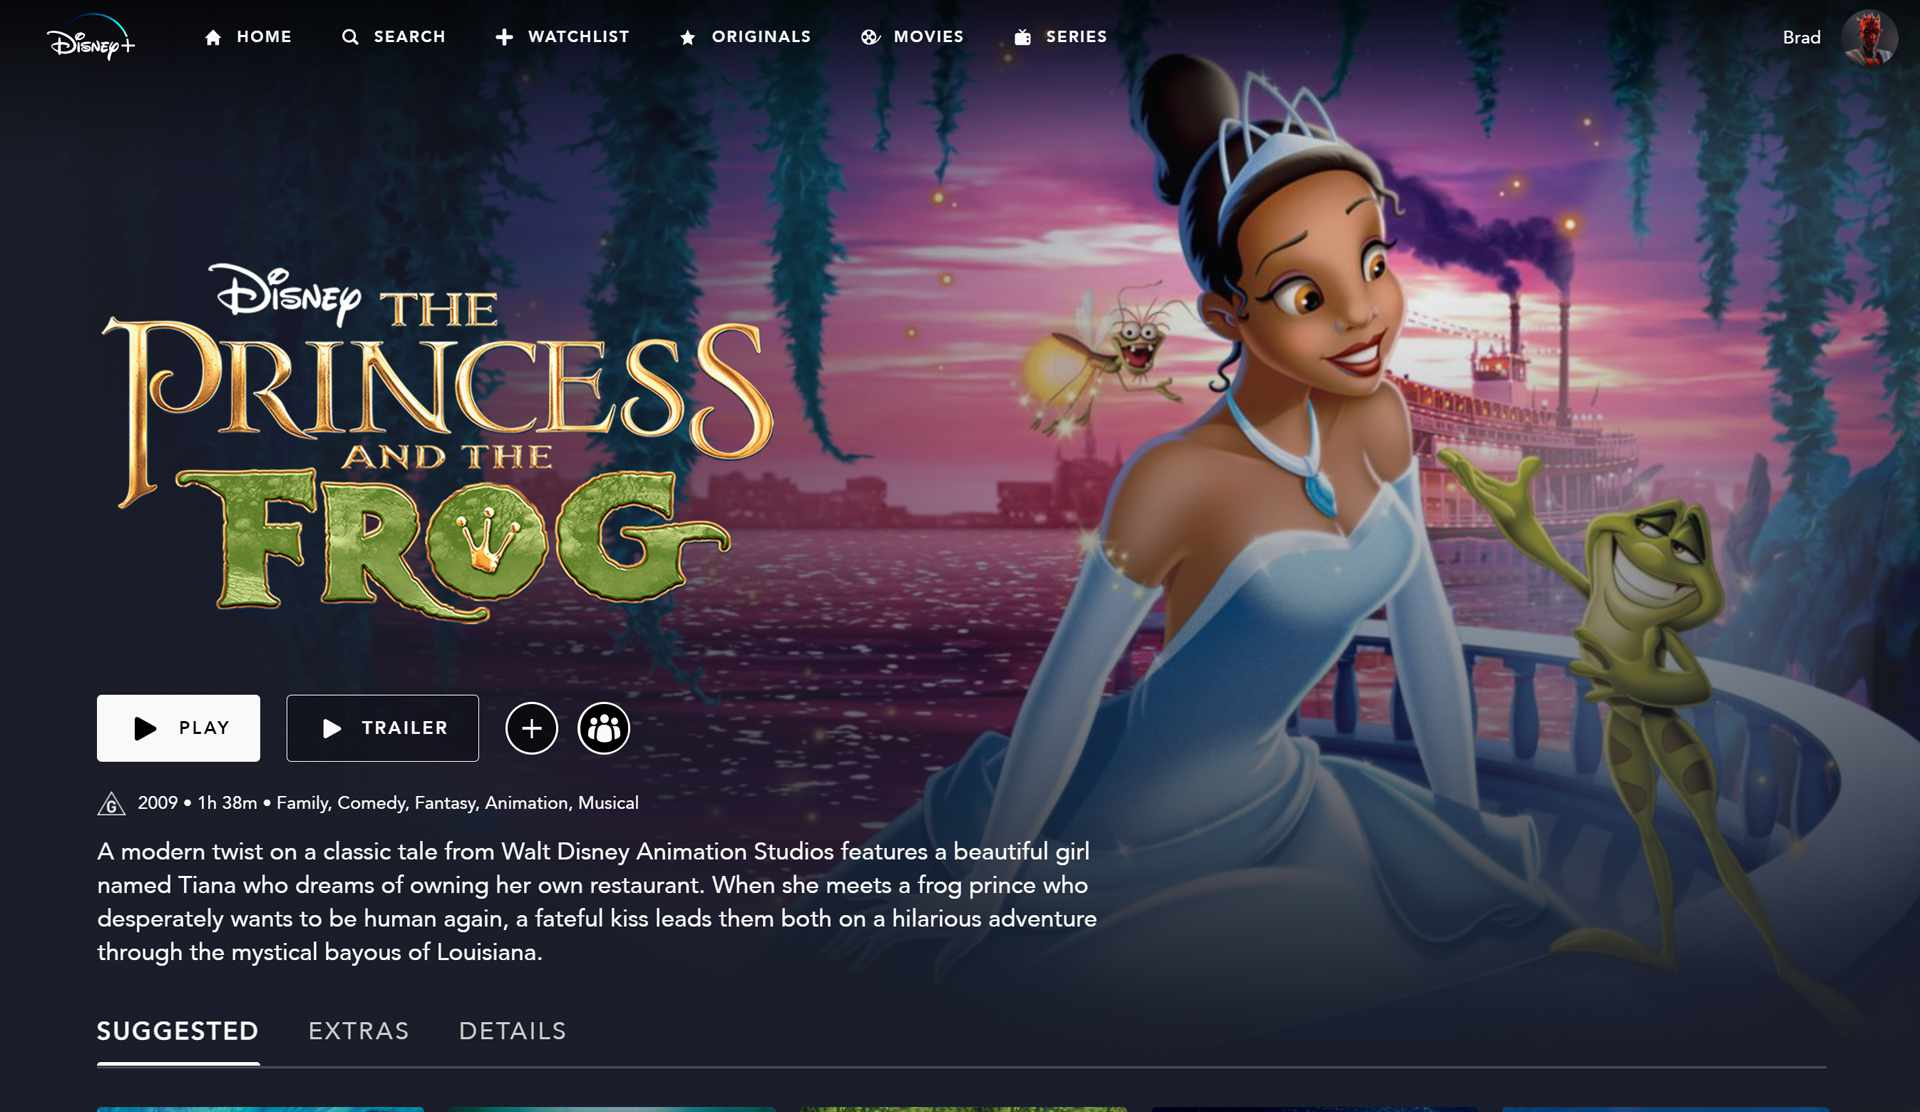 The Princess and the Frog on Disney Plus.